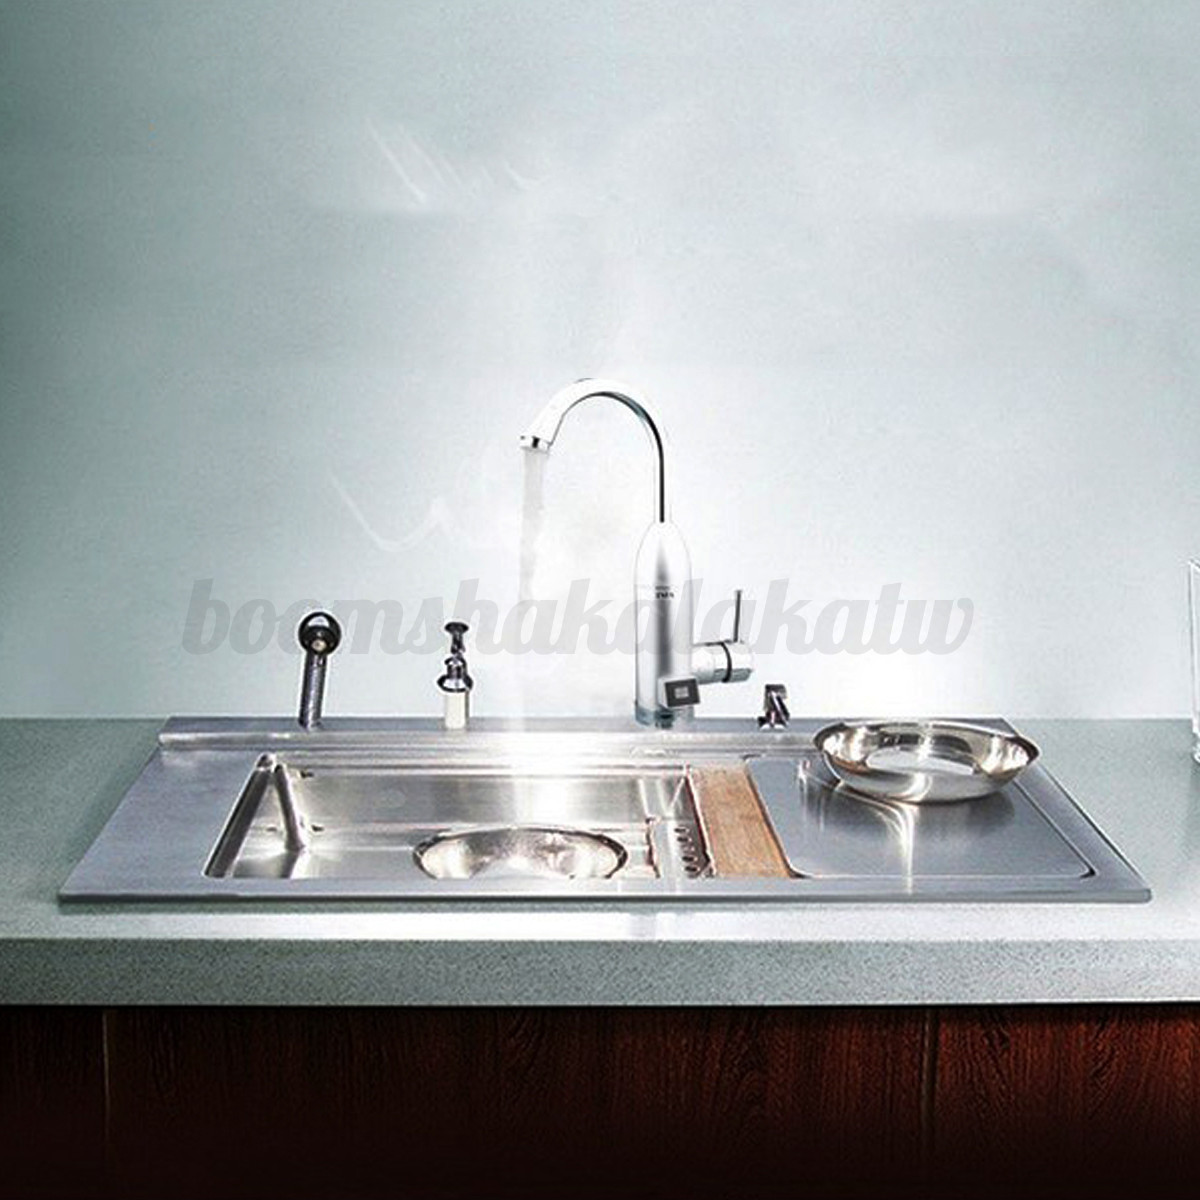 instant water heater kitchen sink ge artistry electric tankless faucet tap hot